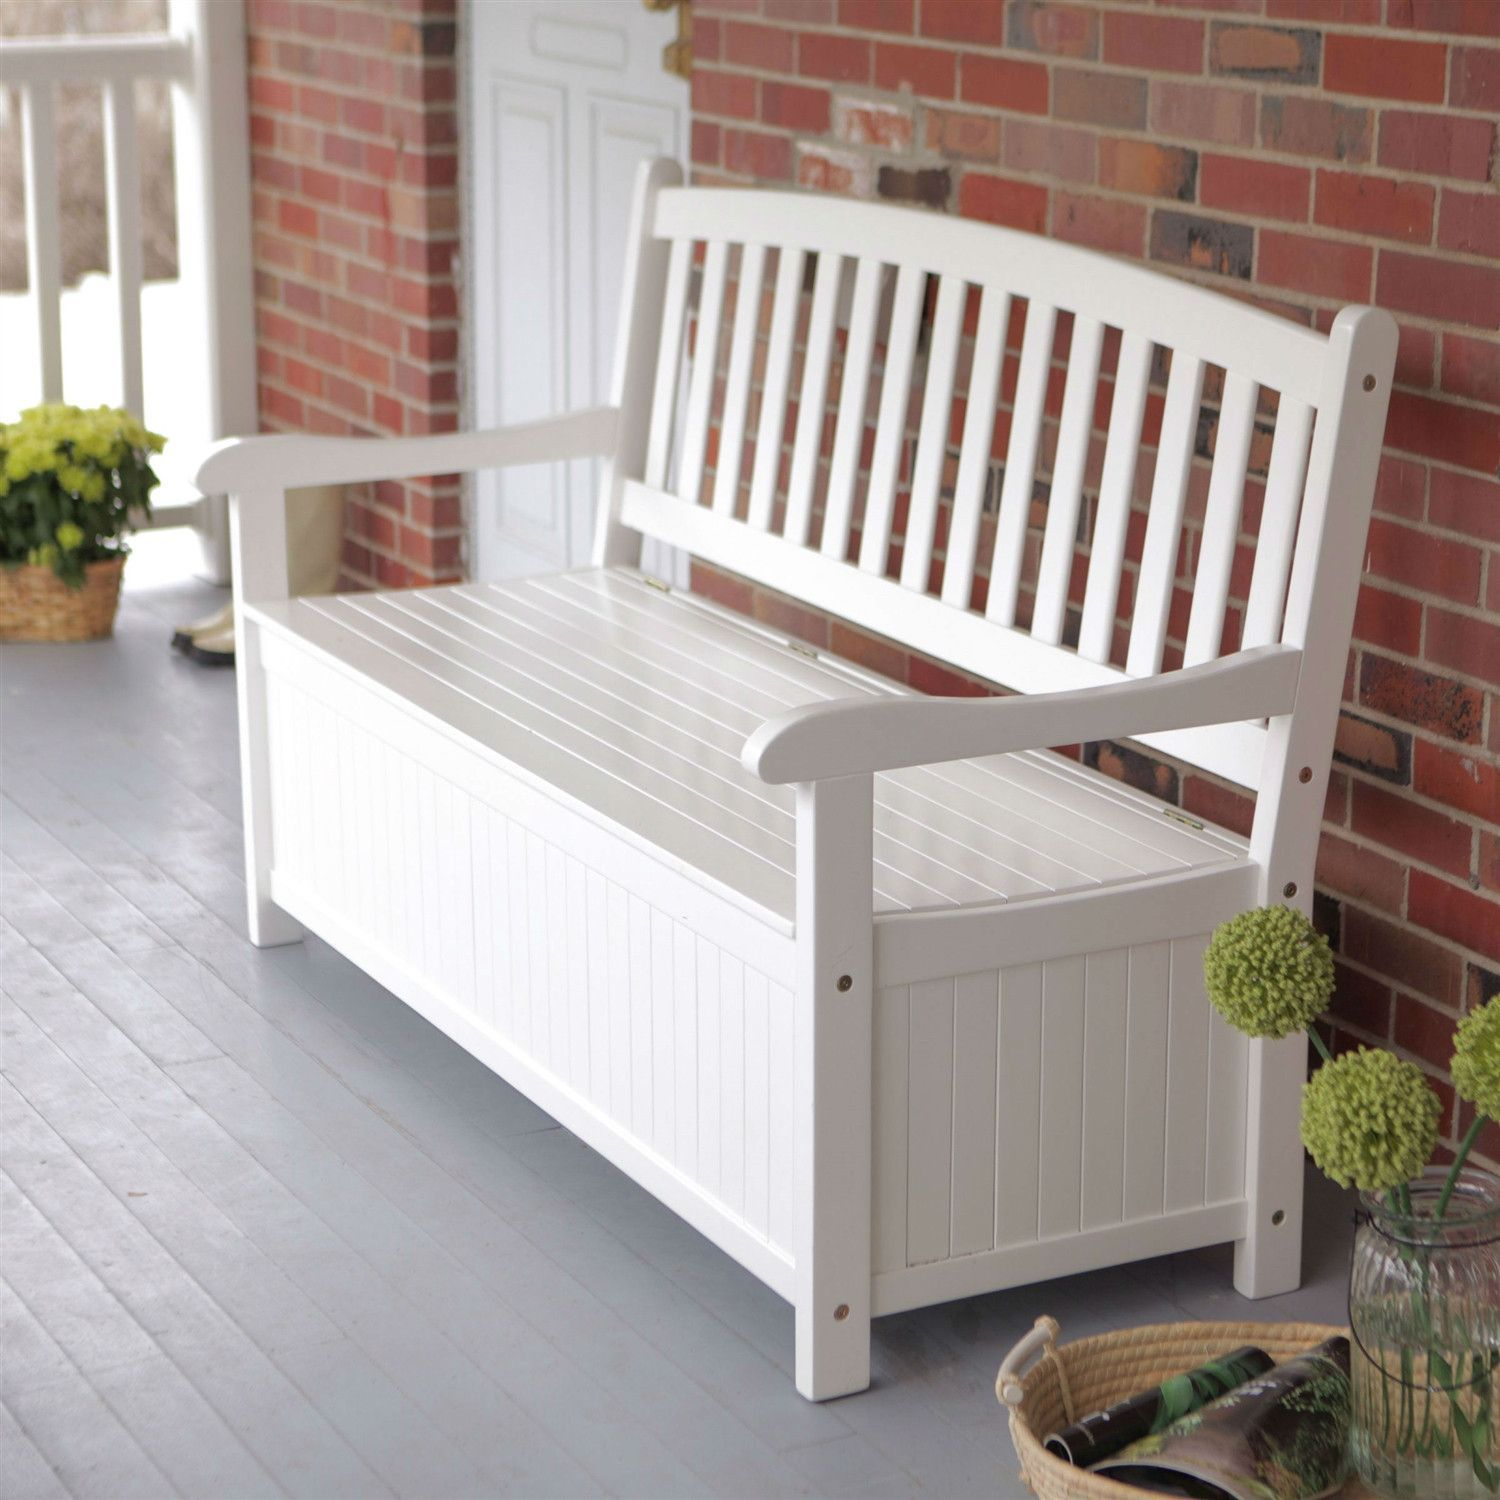 White Wood 4 Ft Outdoor Patio Garden Bench Deck Box With Storage